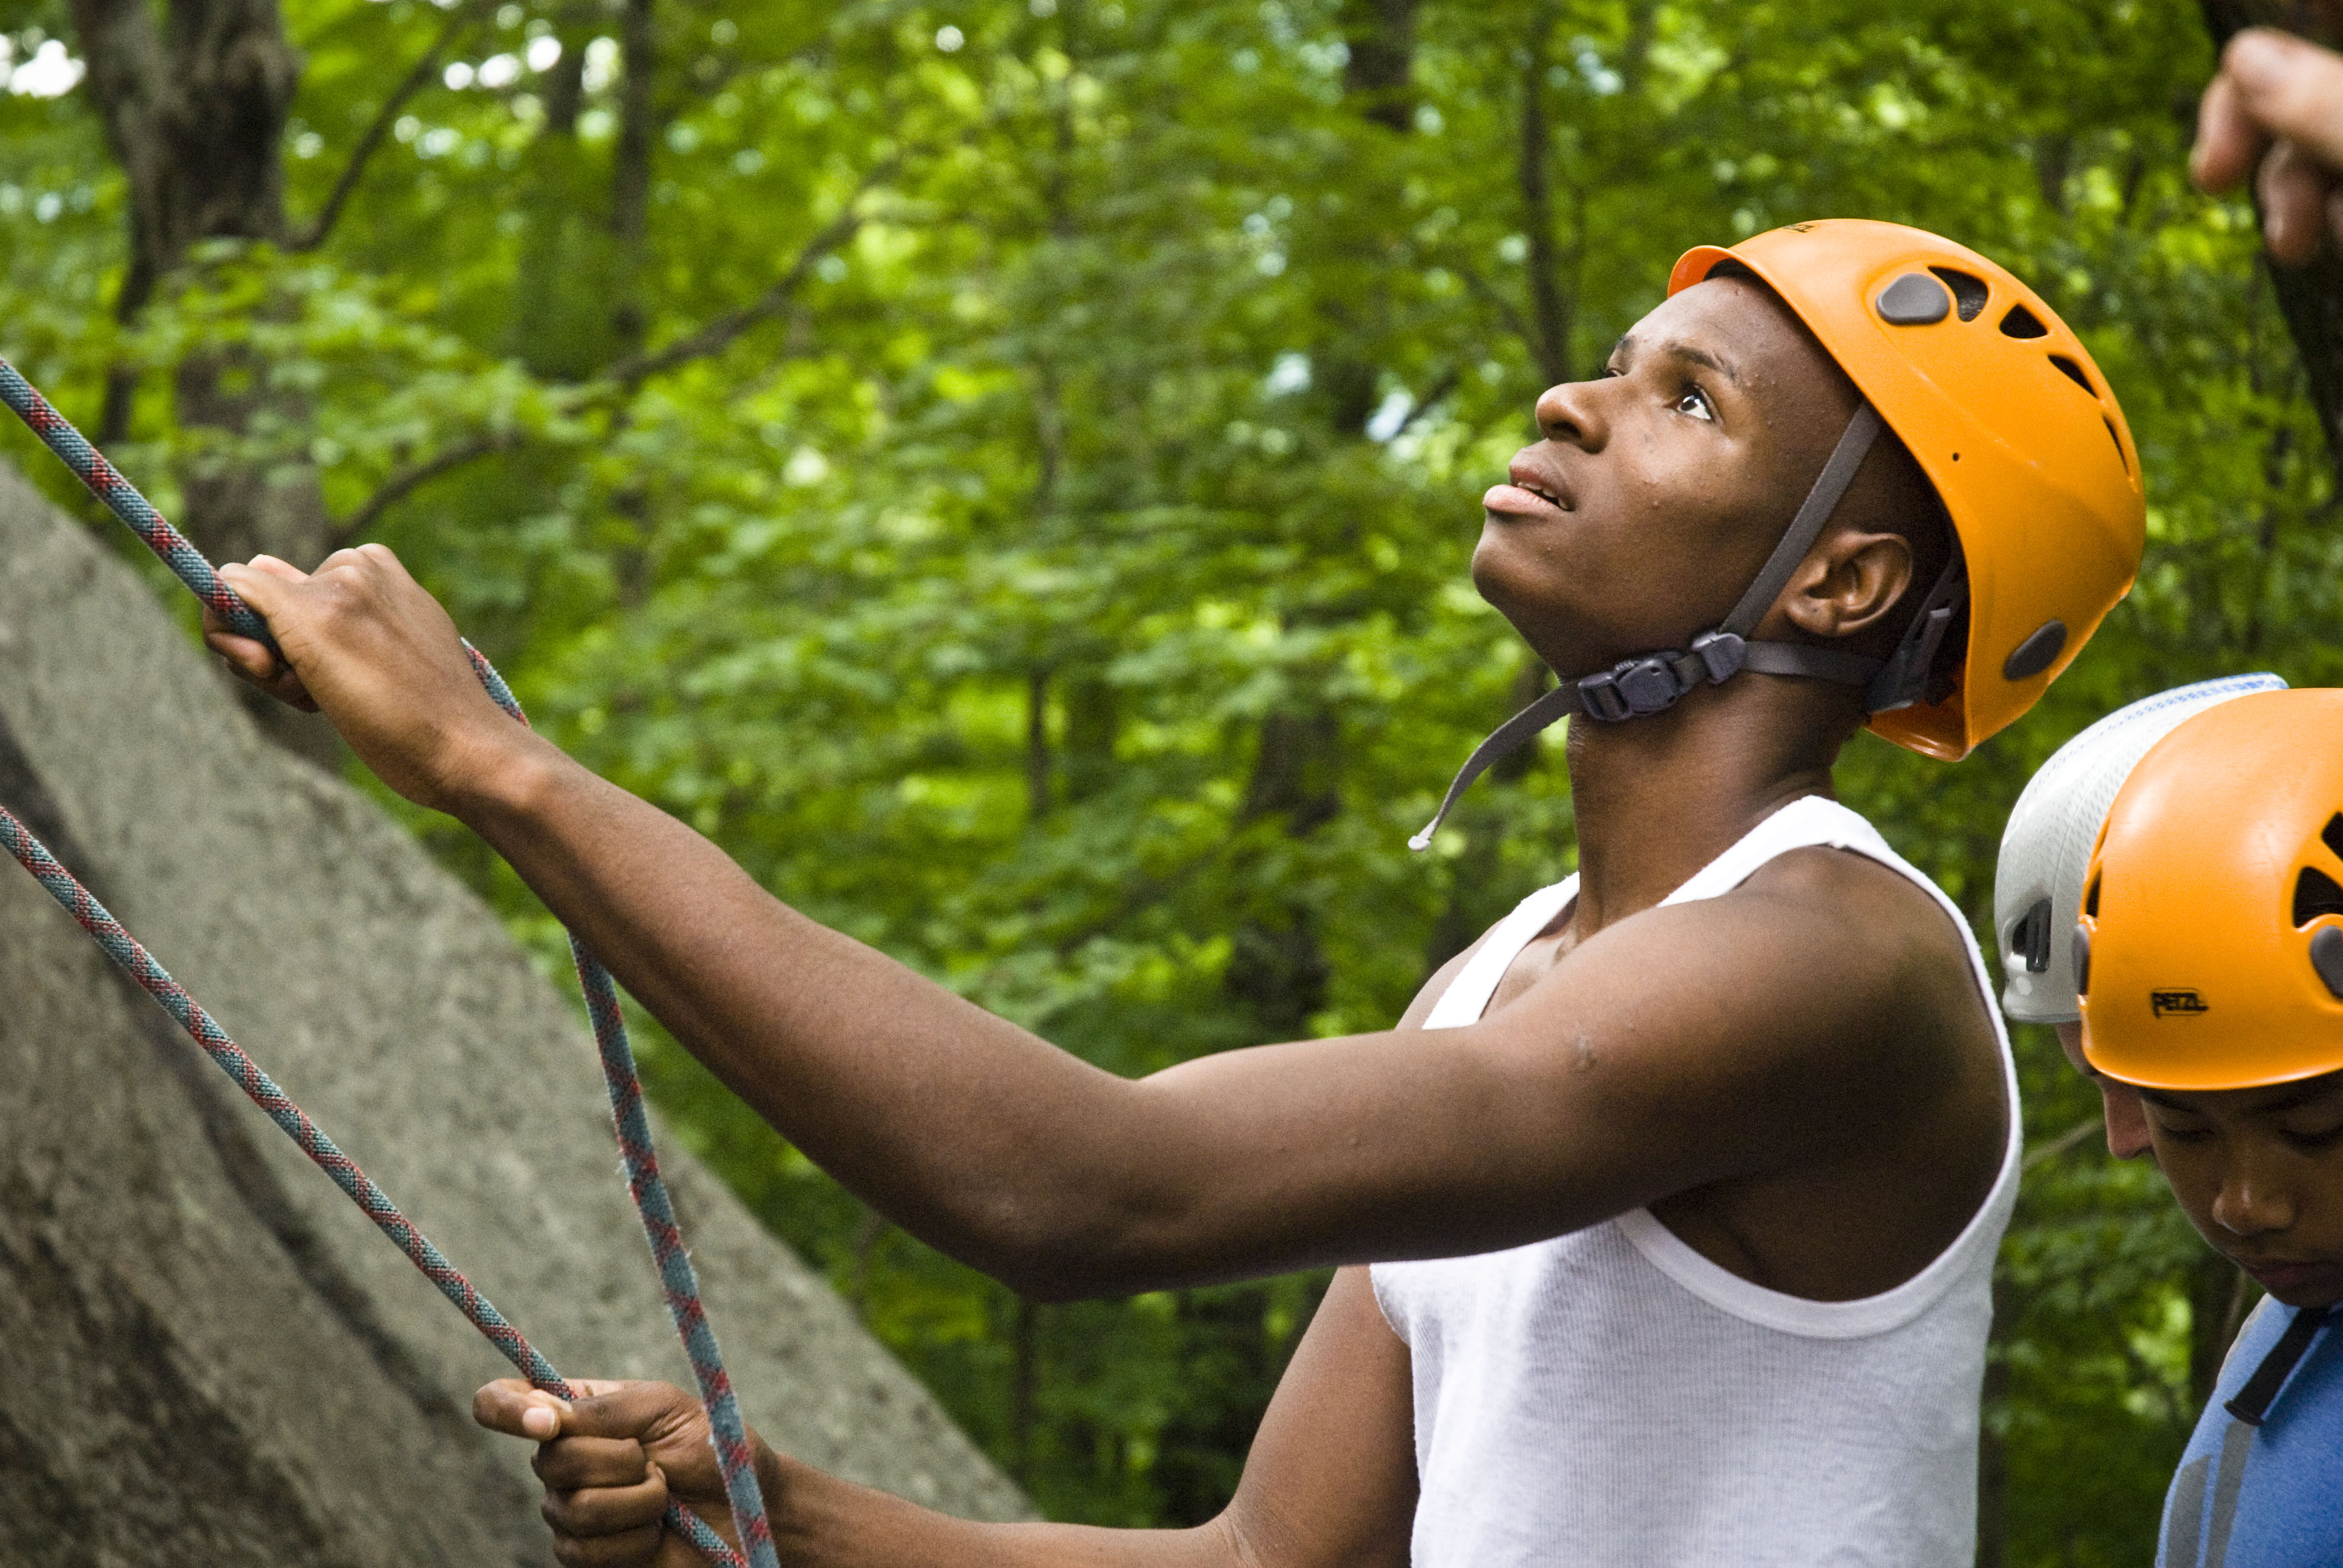 Summer Program - Animals/Nature | AMC's Teen Wilderness Adventures: 10-Day Multisport Adventure - Backpack, Climb, Canoe (Ages 14-16)